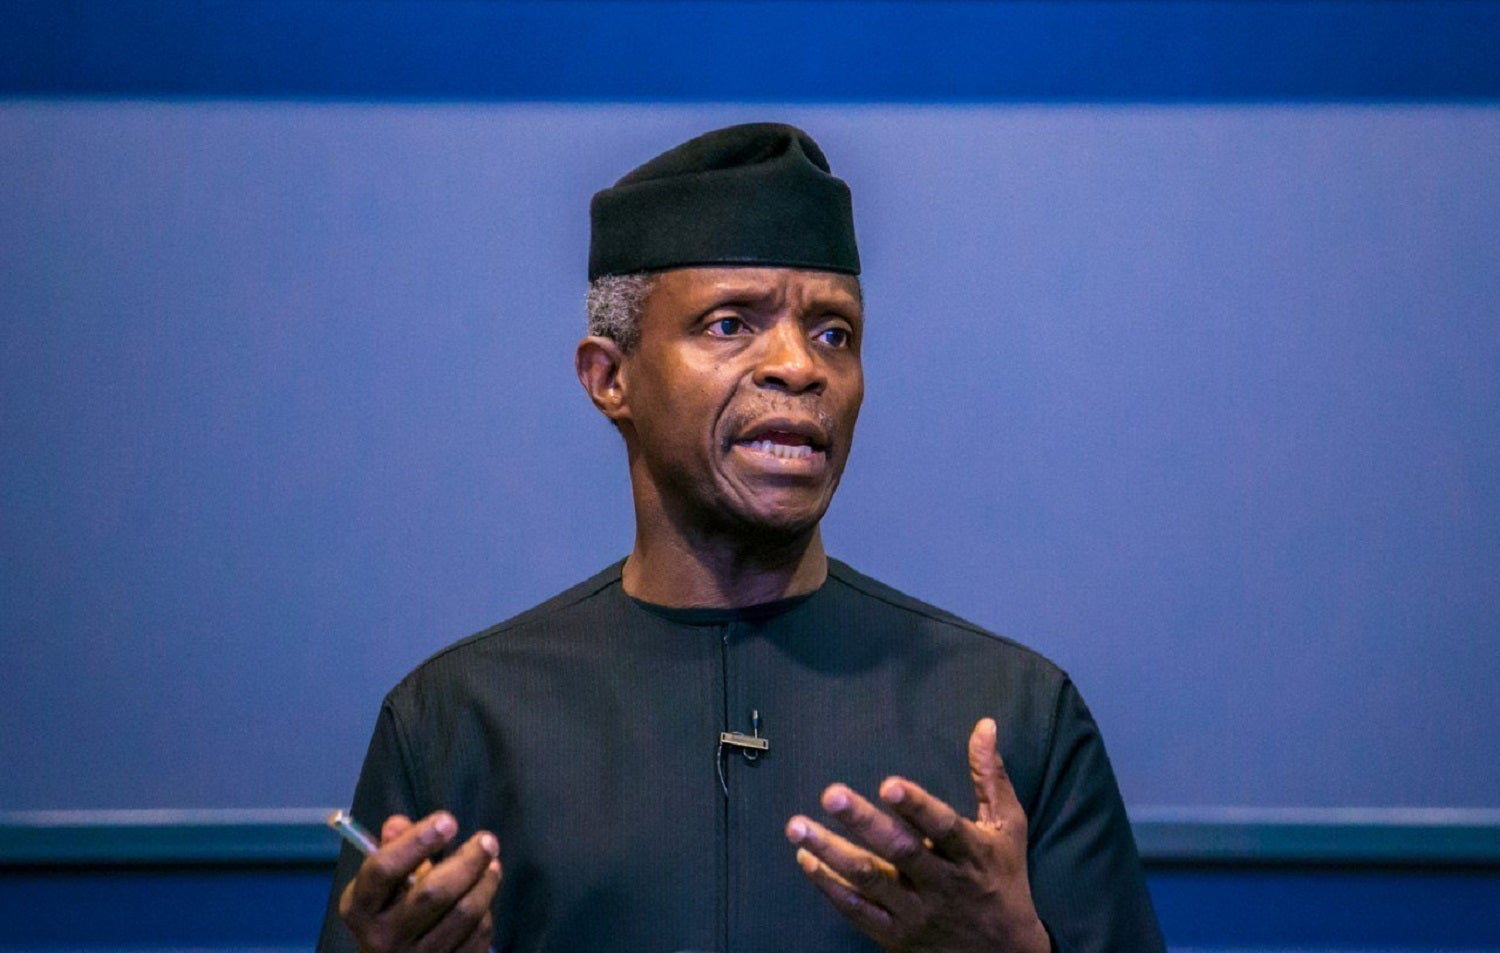 Yemi Osinbajo Is Enthused To Partner With Microsoft To Stabilize The Nigeria Digital Economy